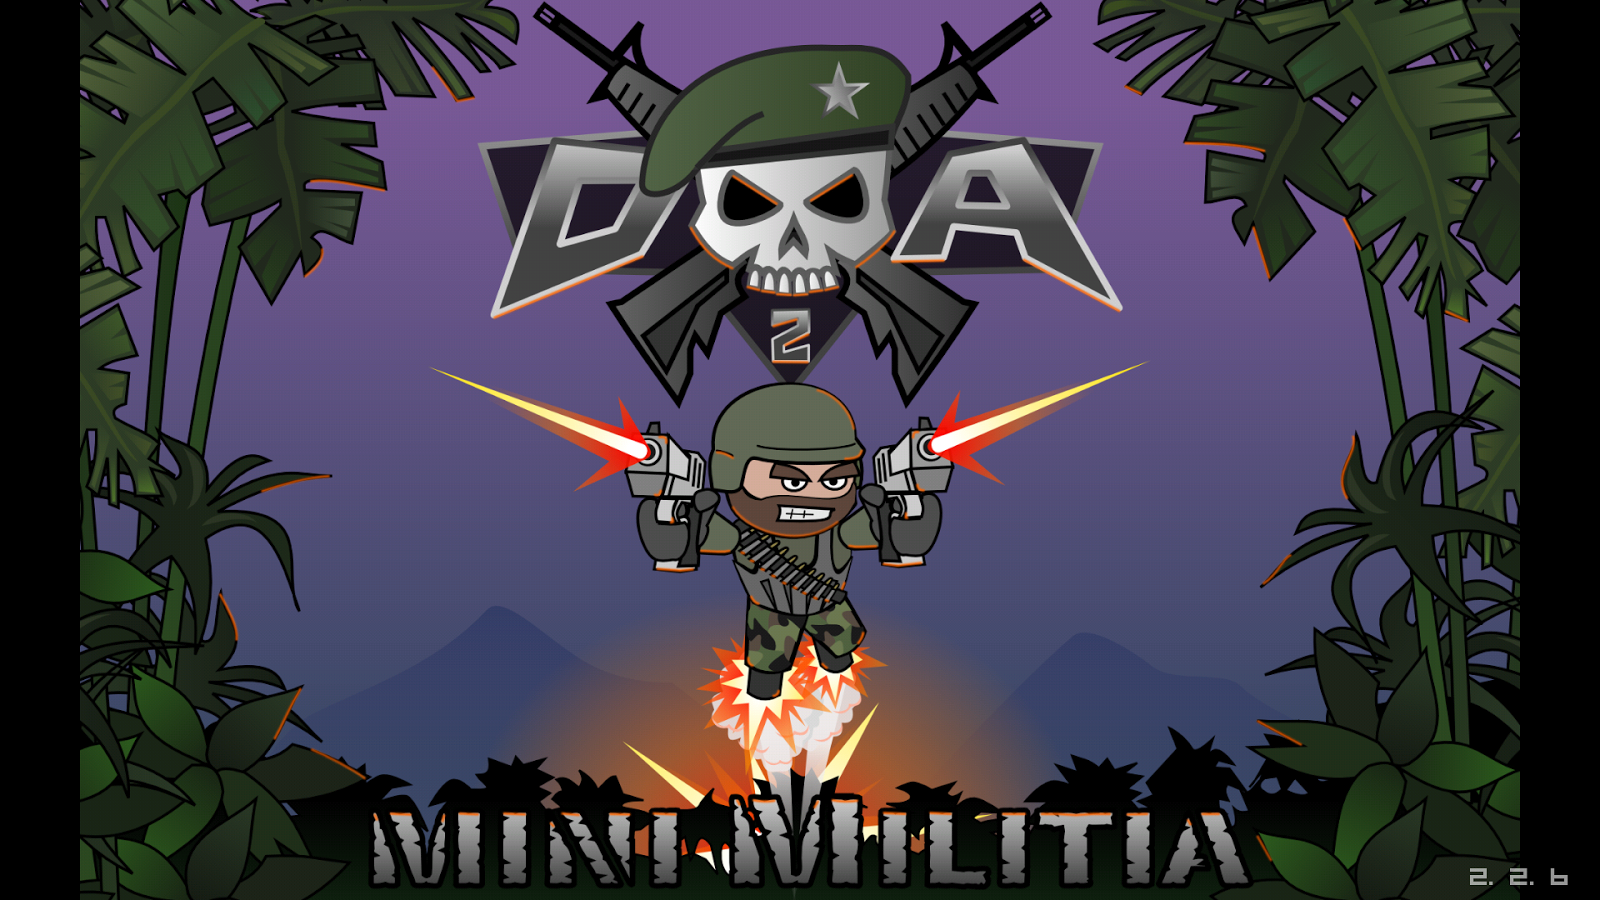 Image currently unavailable. Go to www.generator.doeshack.com and choose Doodle Army 2 : Mini Militia image, you will be redirect to Doodle Army 2 : Mini Militia Generator site.